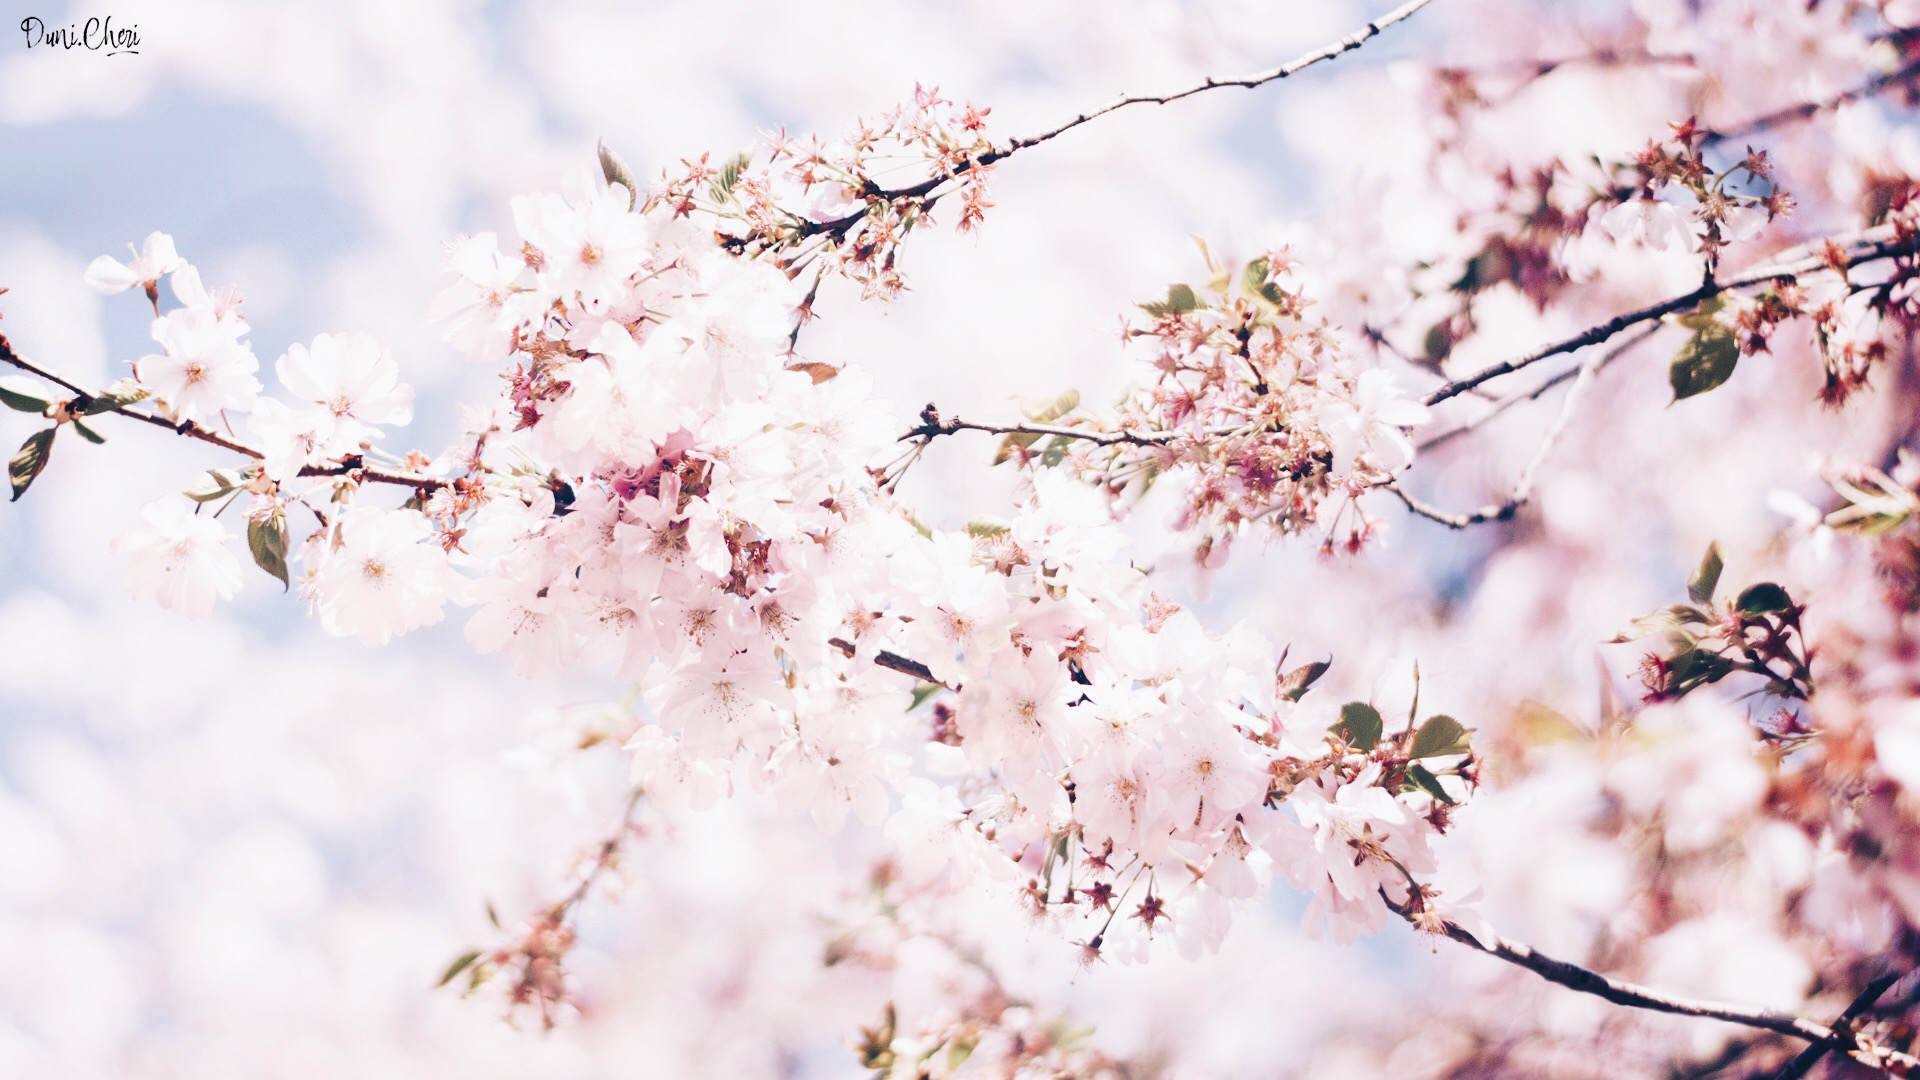 flower wallpaper cherry blossom wallpaperdesktop